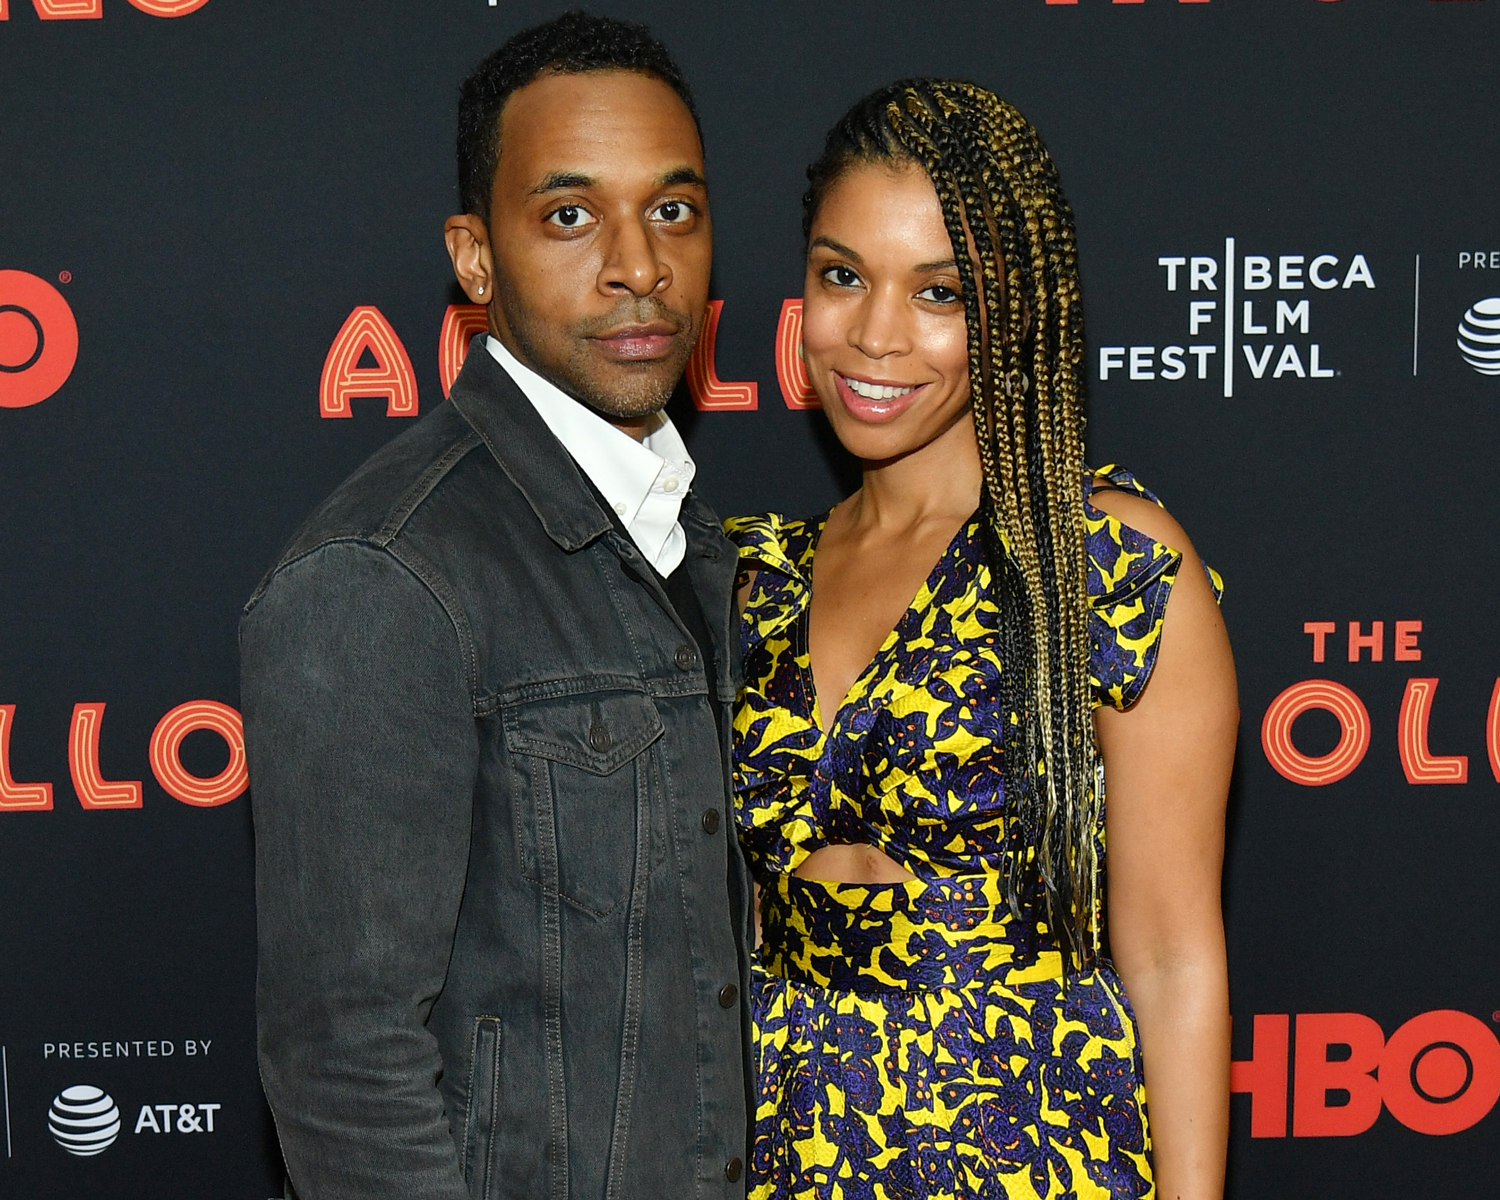 This Is Us Star Susan Kelechi Watson Is Engaged to Boyfriend Jaime Lincoln Smith